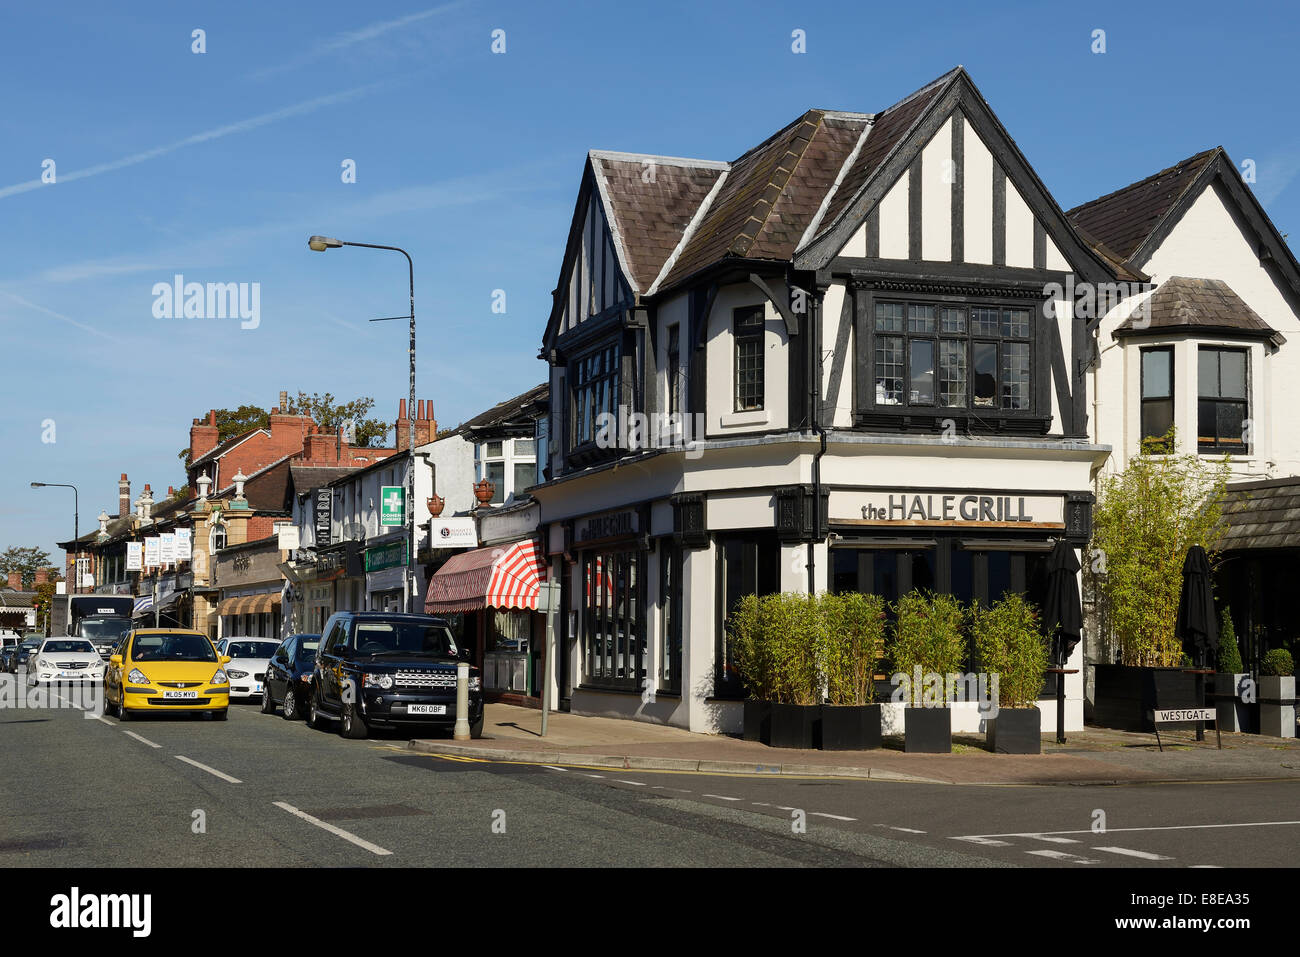 The Hale Grill on Ashley Road Hale Greater Manchester UK - Stock Image